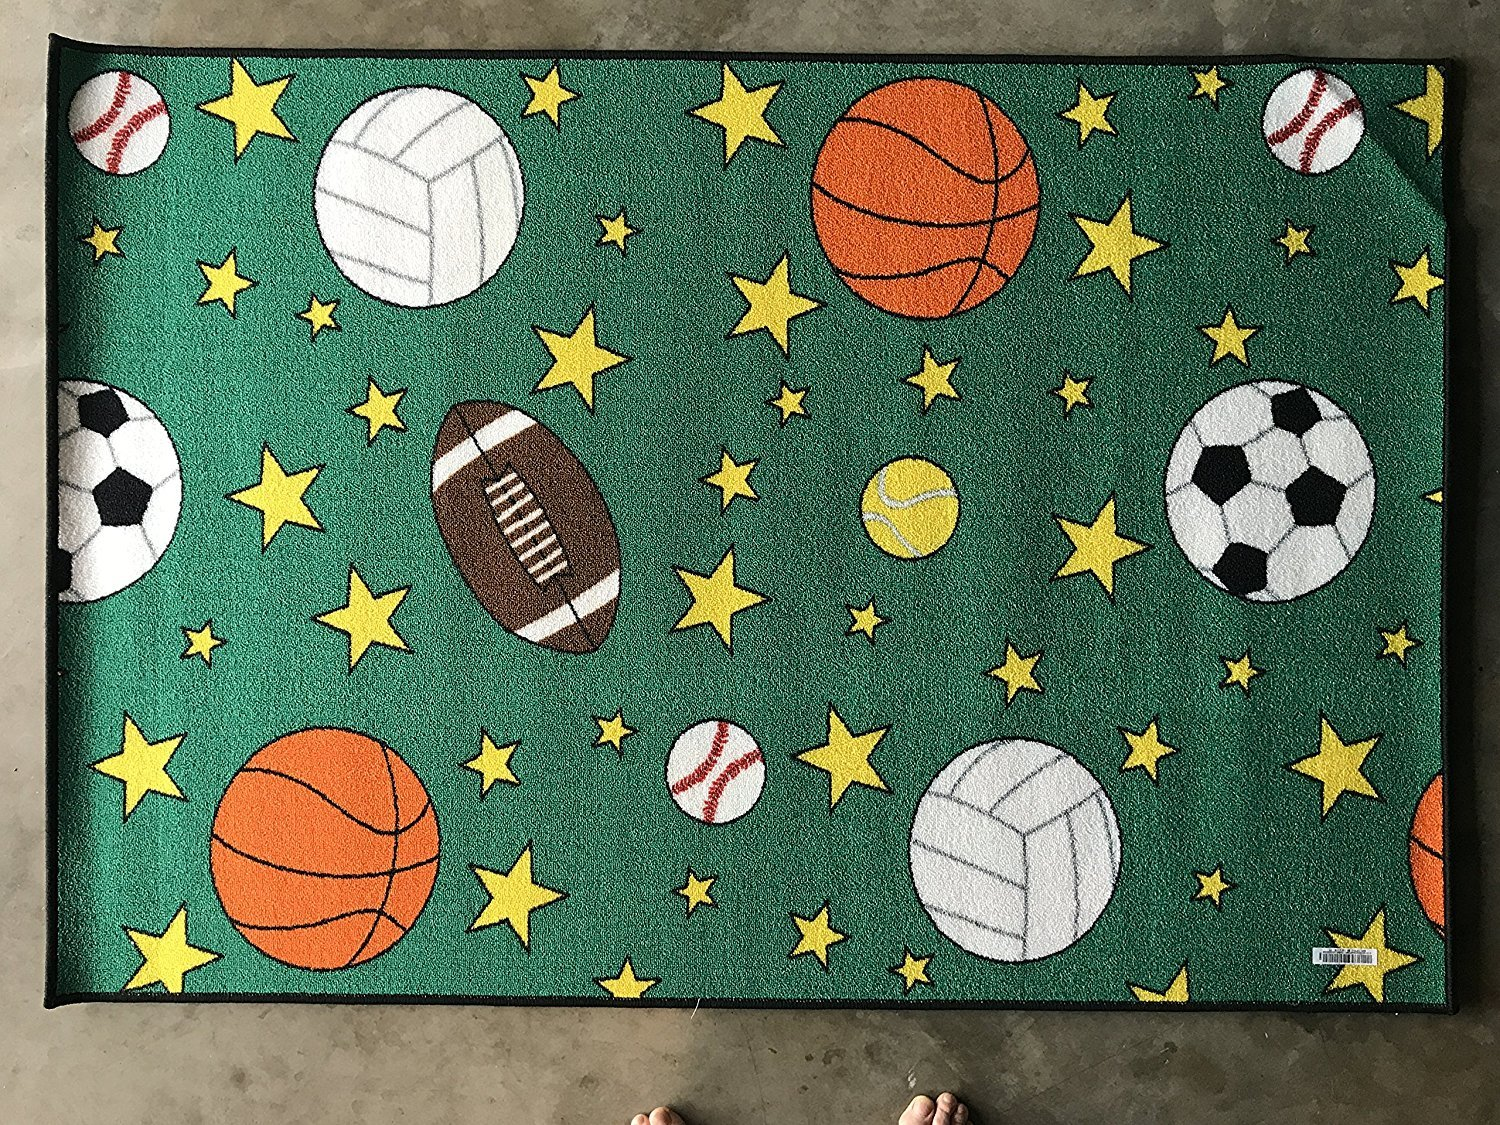 Play Time Kids Reversible Area Rug Race Track Learning Carpet Game Room Design 9 (4 Feet X 5 Feet 9 Inch)